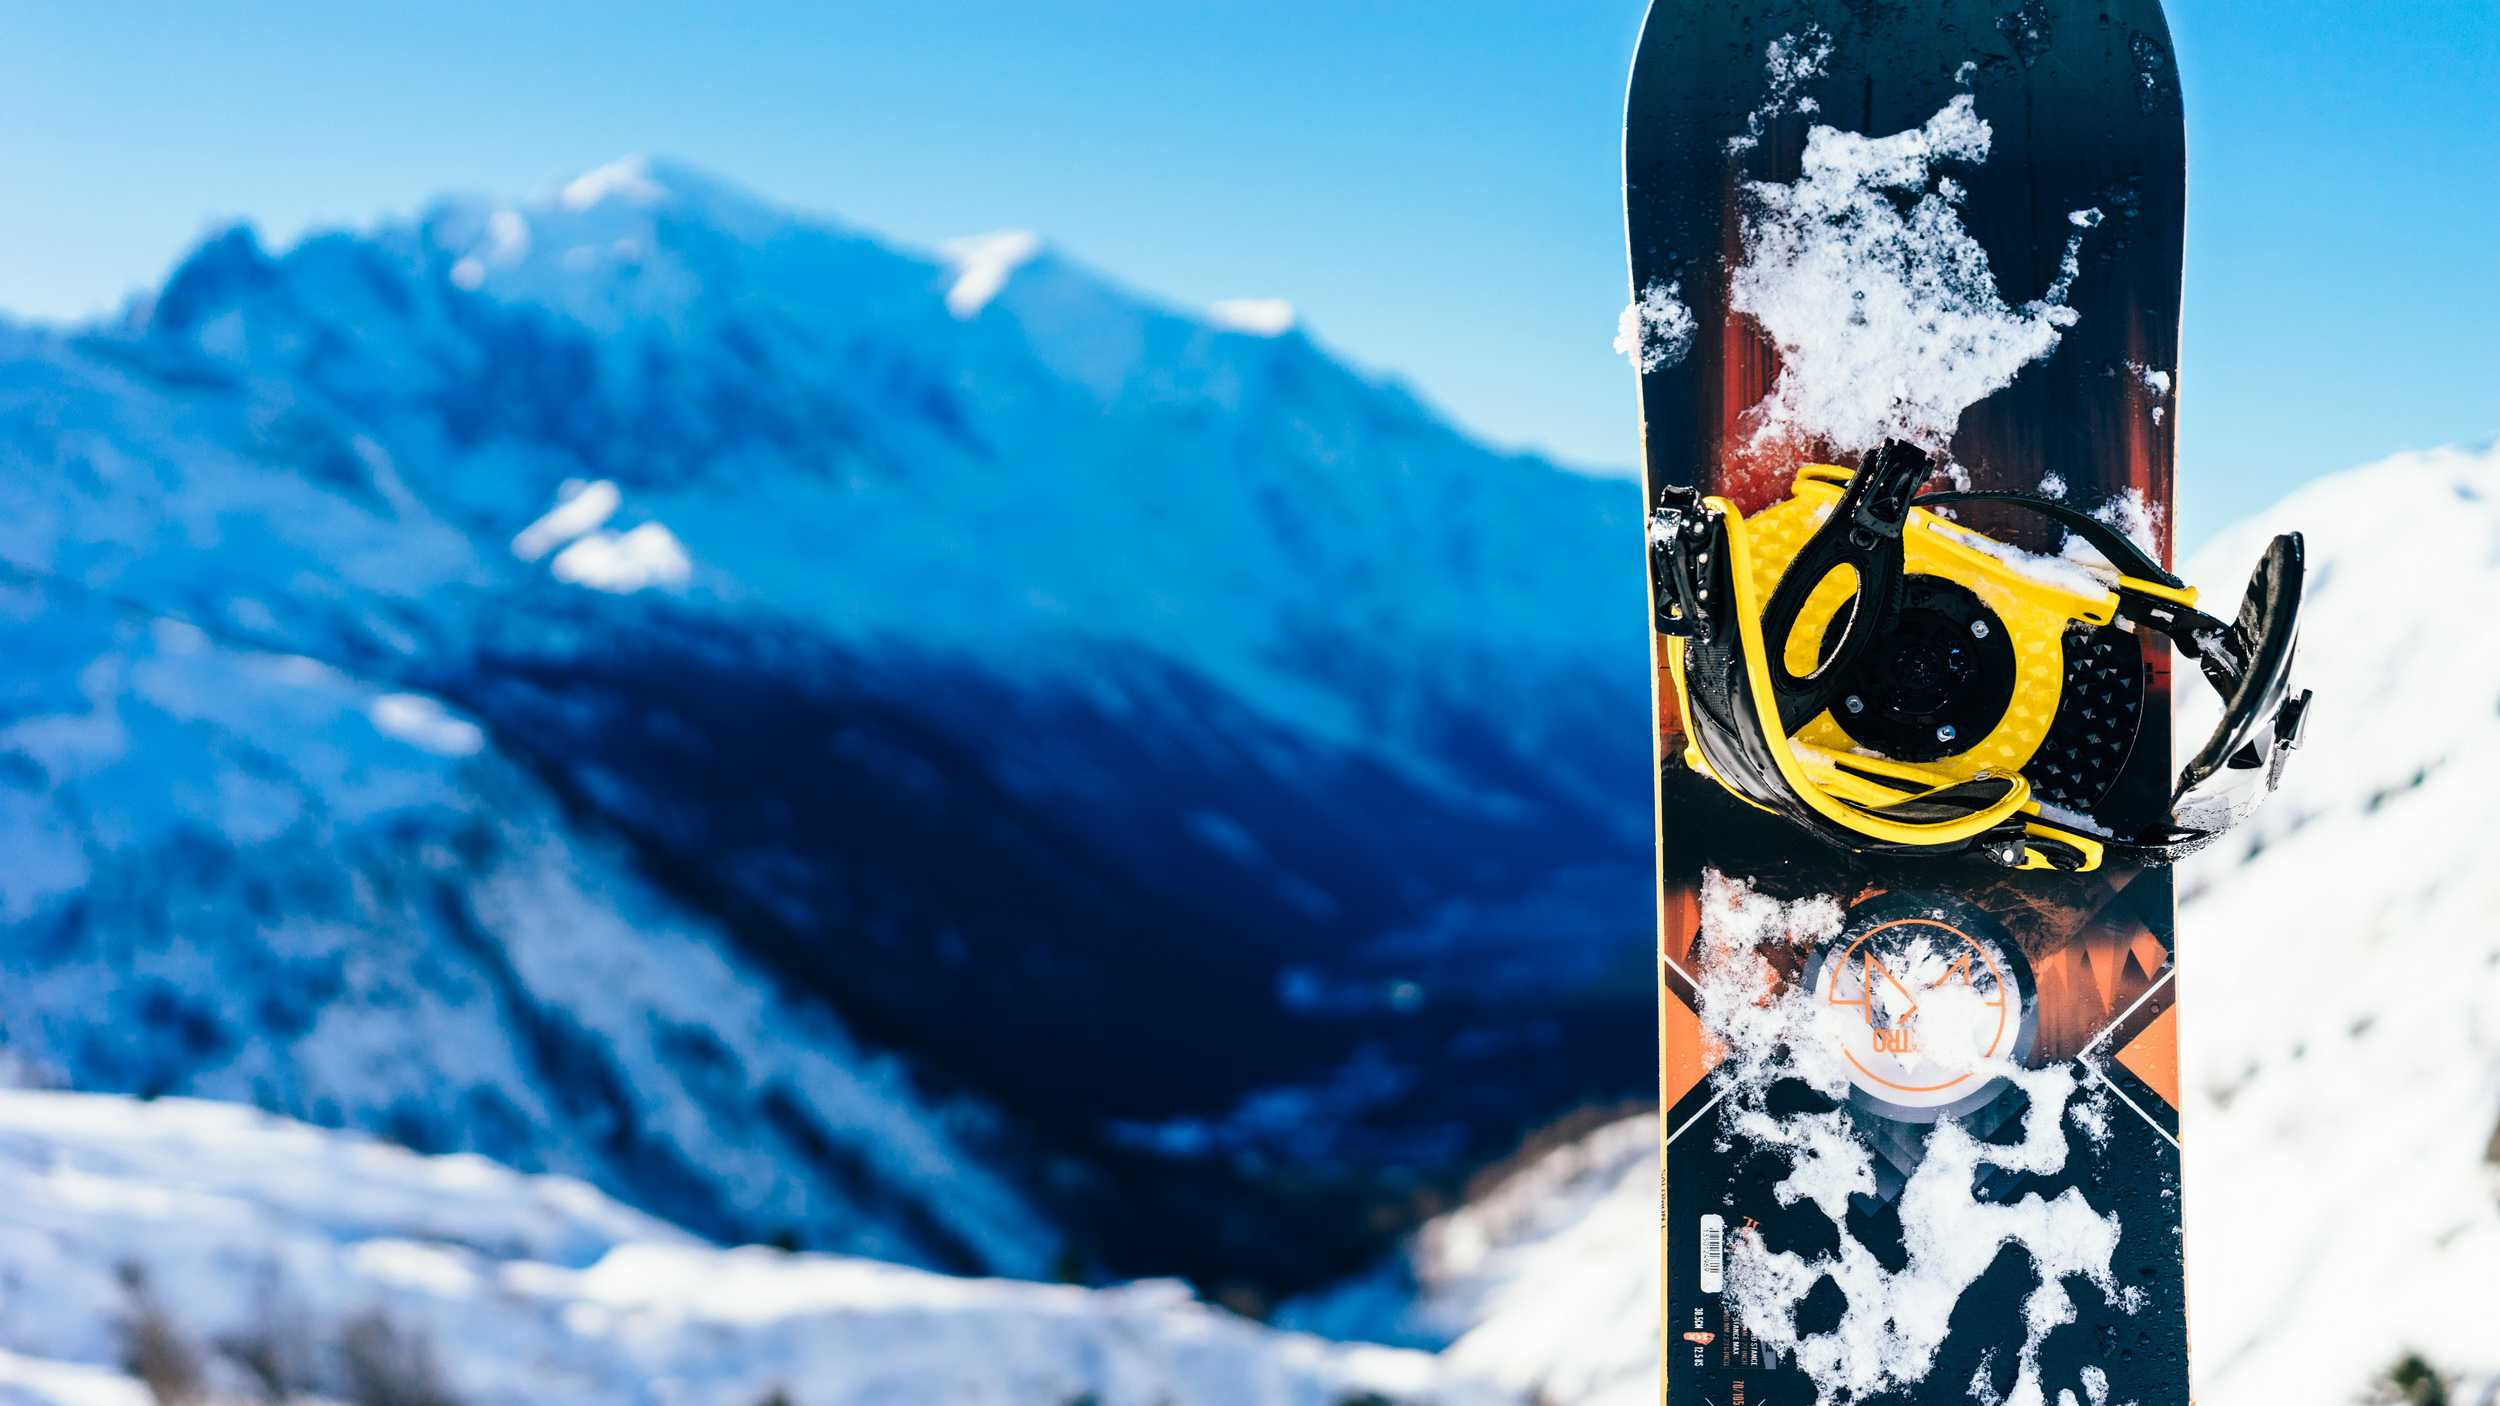 The Best Women's Snowboard 2018-2019 (Top 4 Great Choices